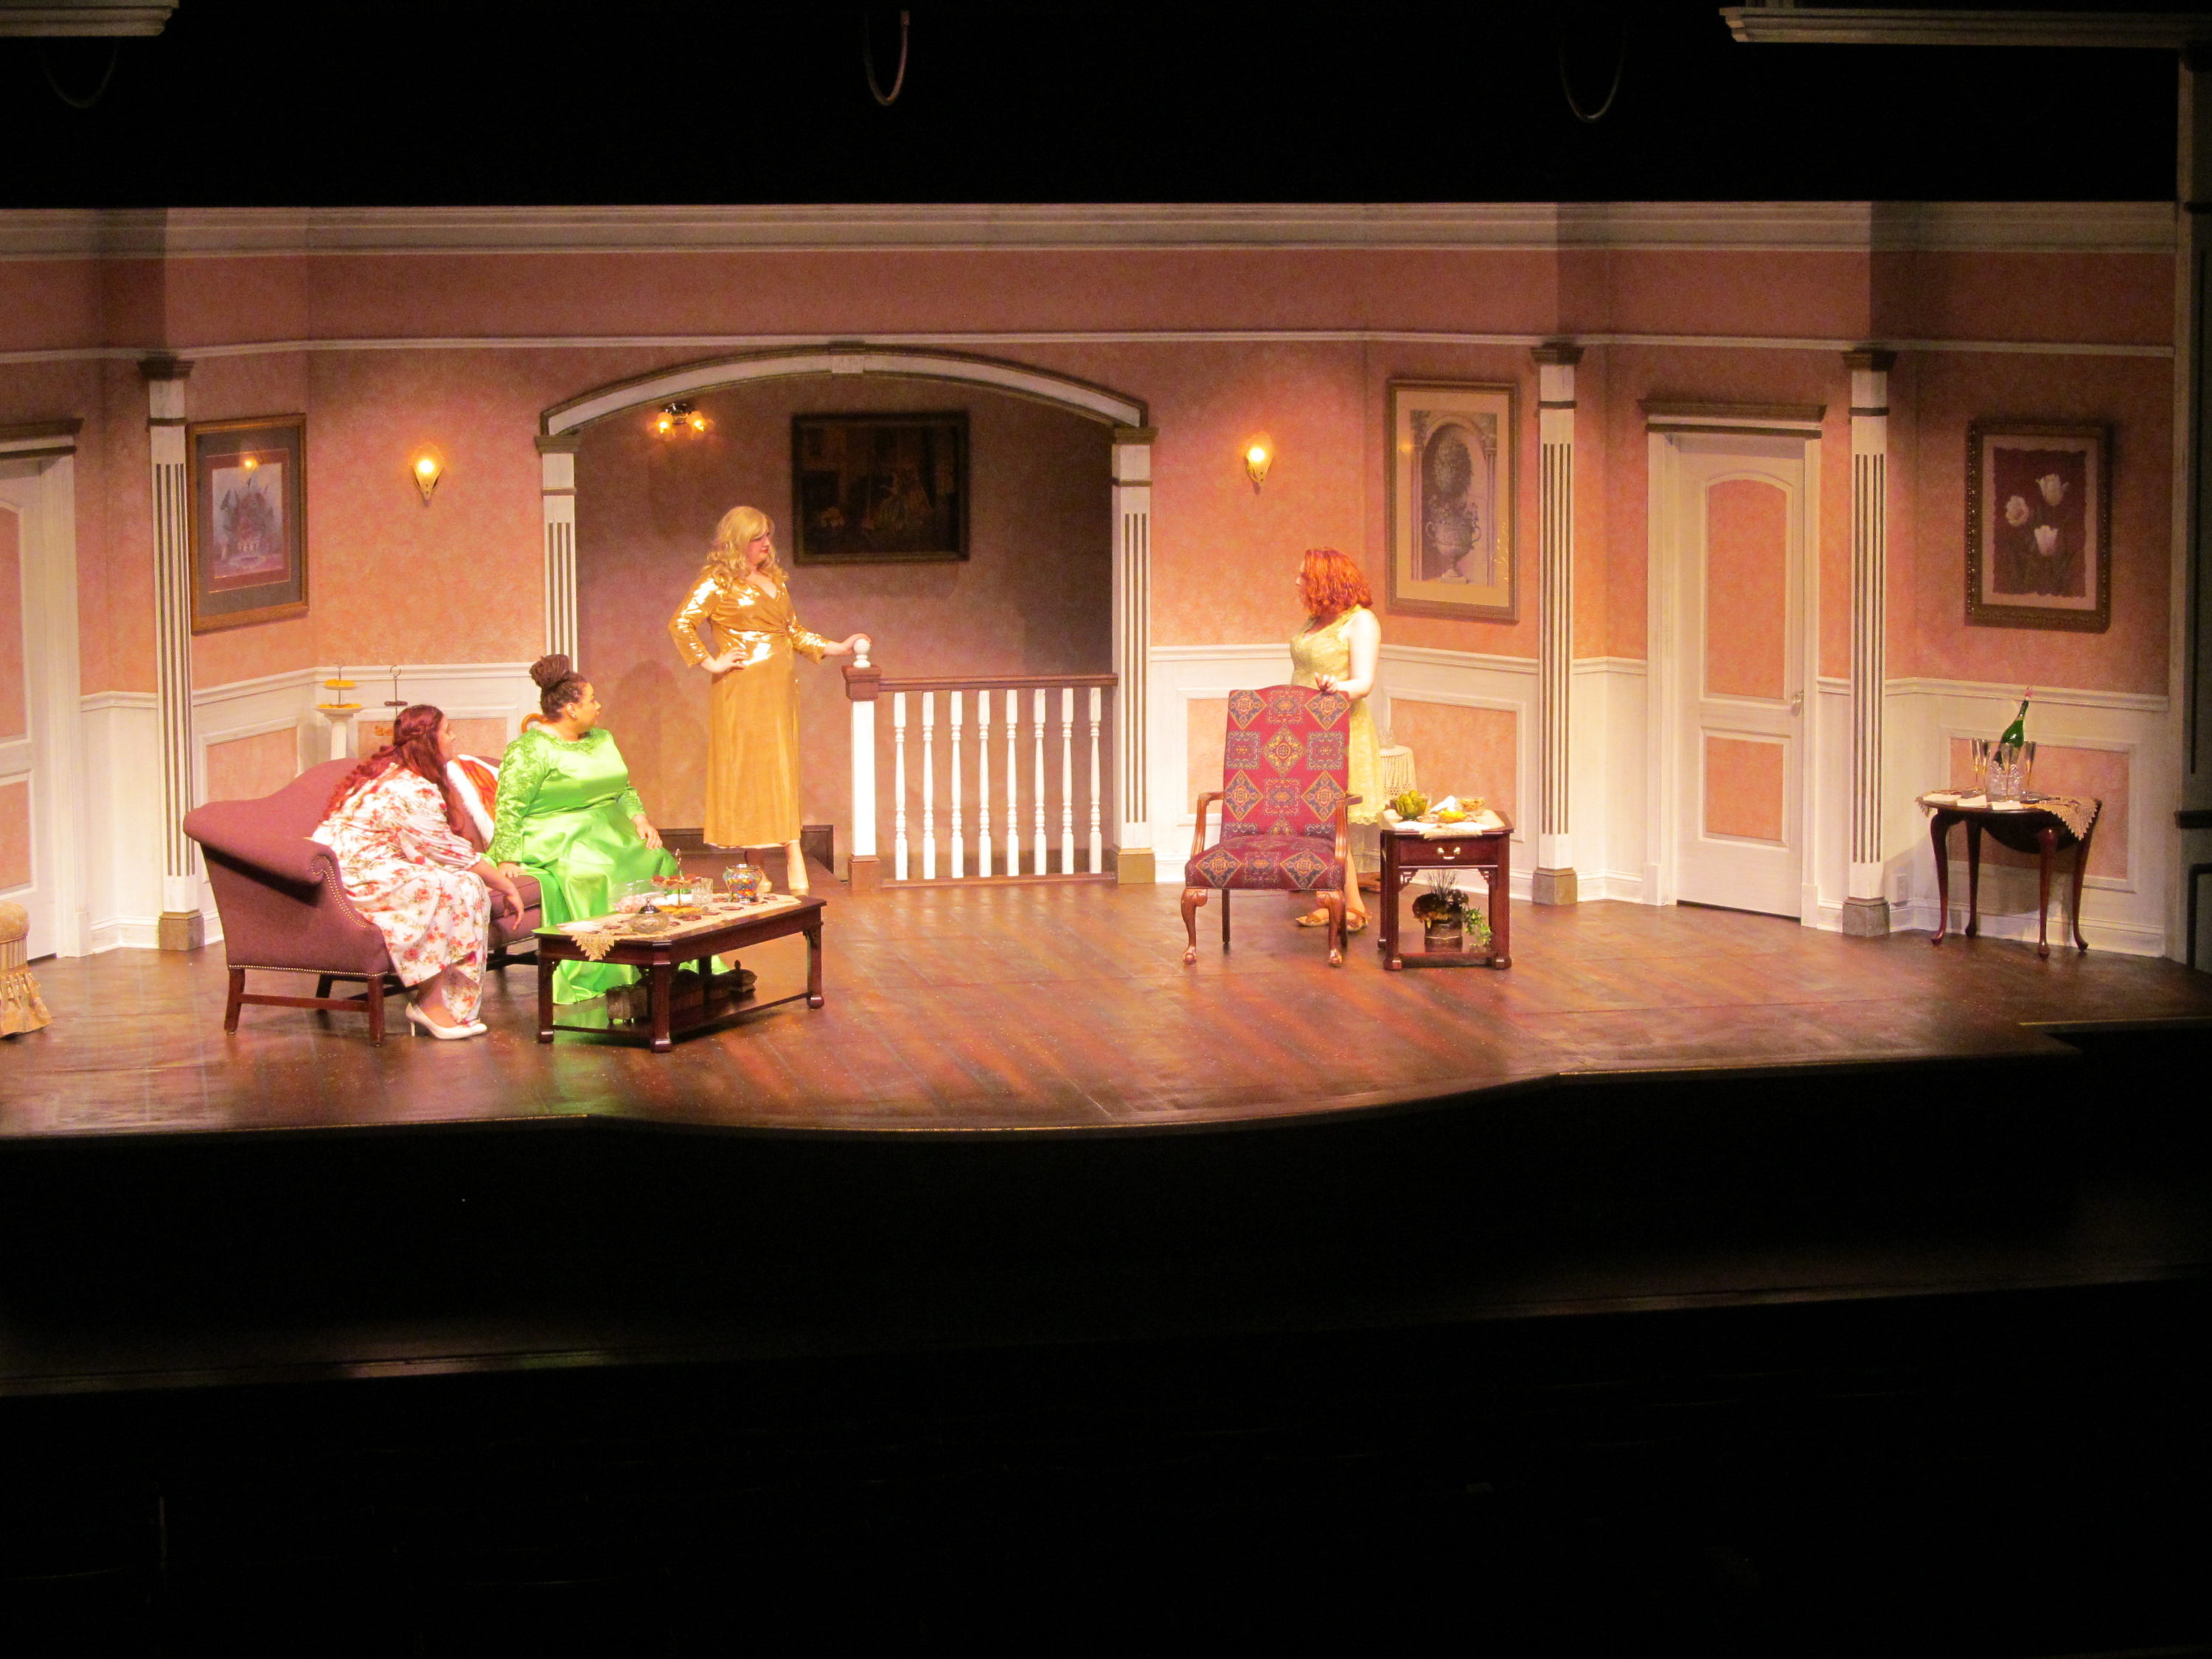 Four women on stage performing Bridesmaids